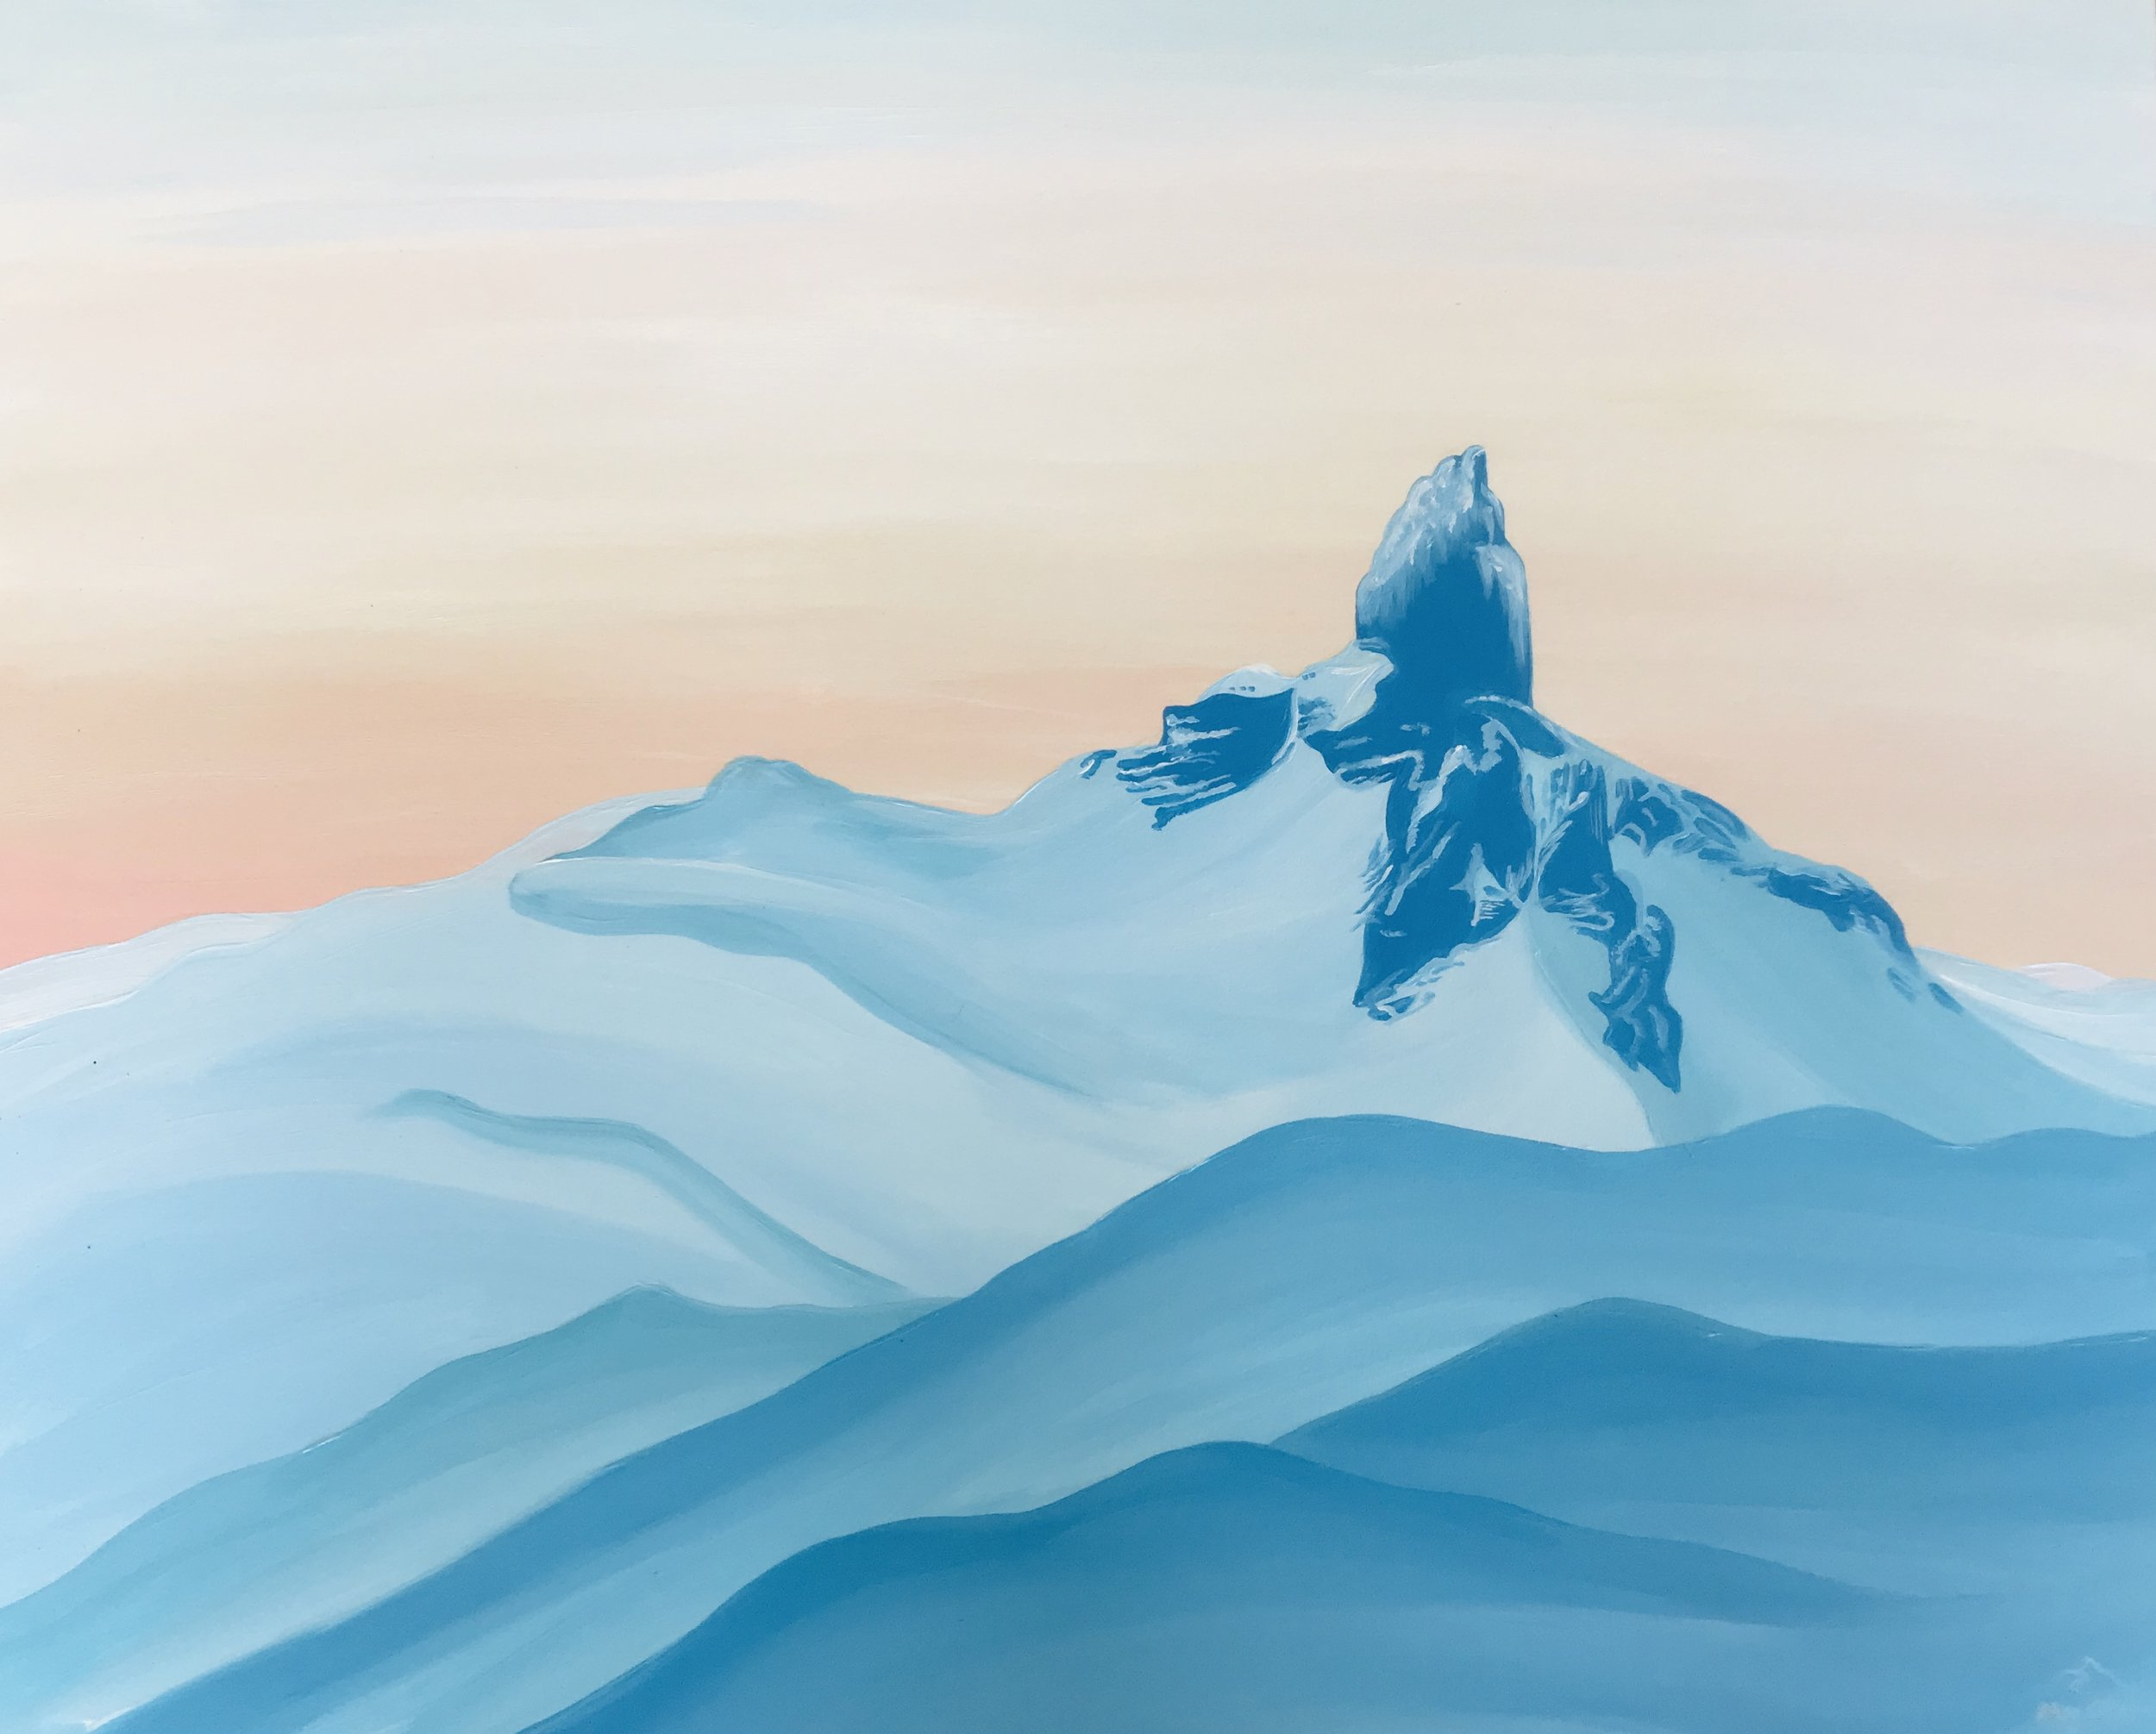 A painting of the Black Tusk, an iconic view from Whistler Blackcomb